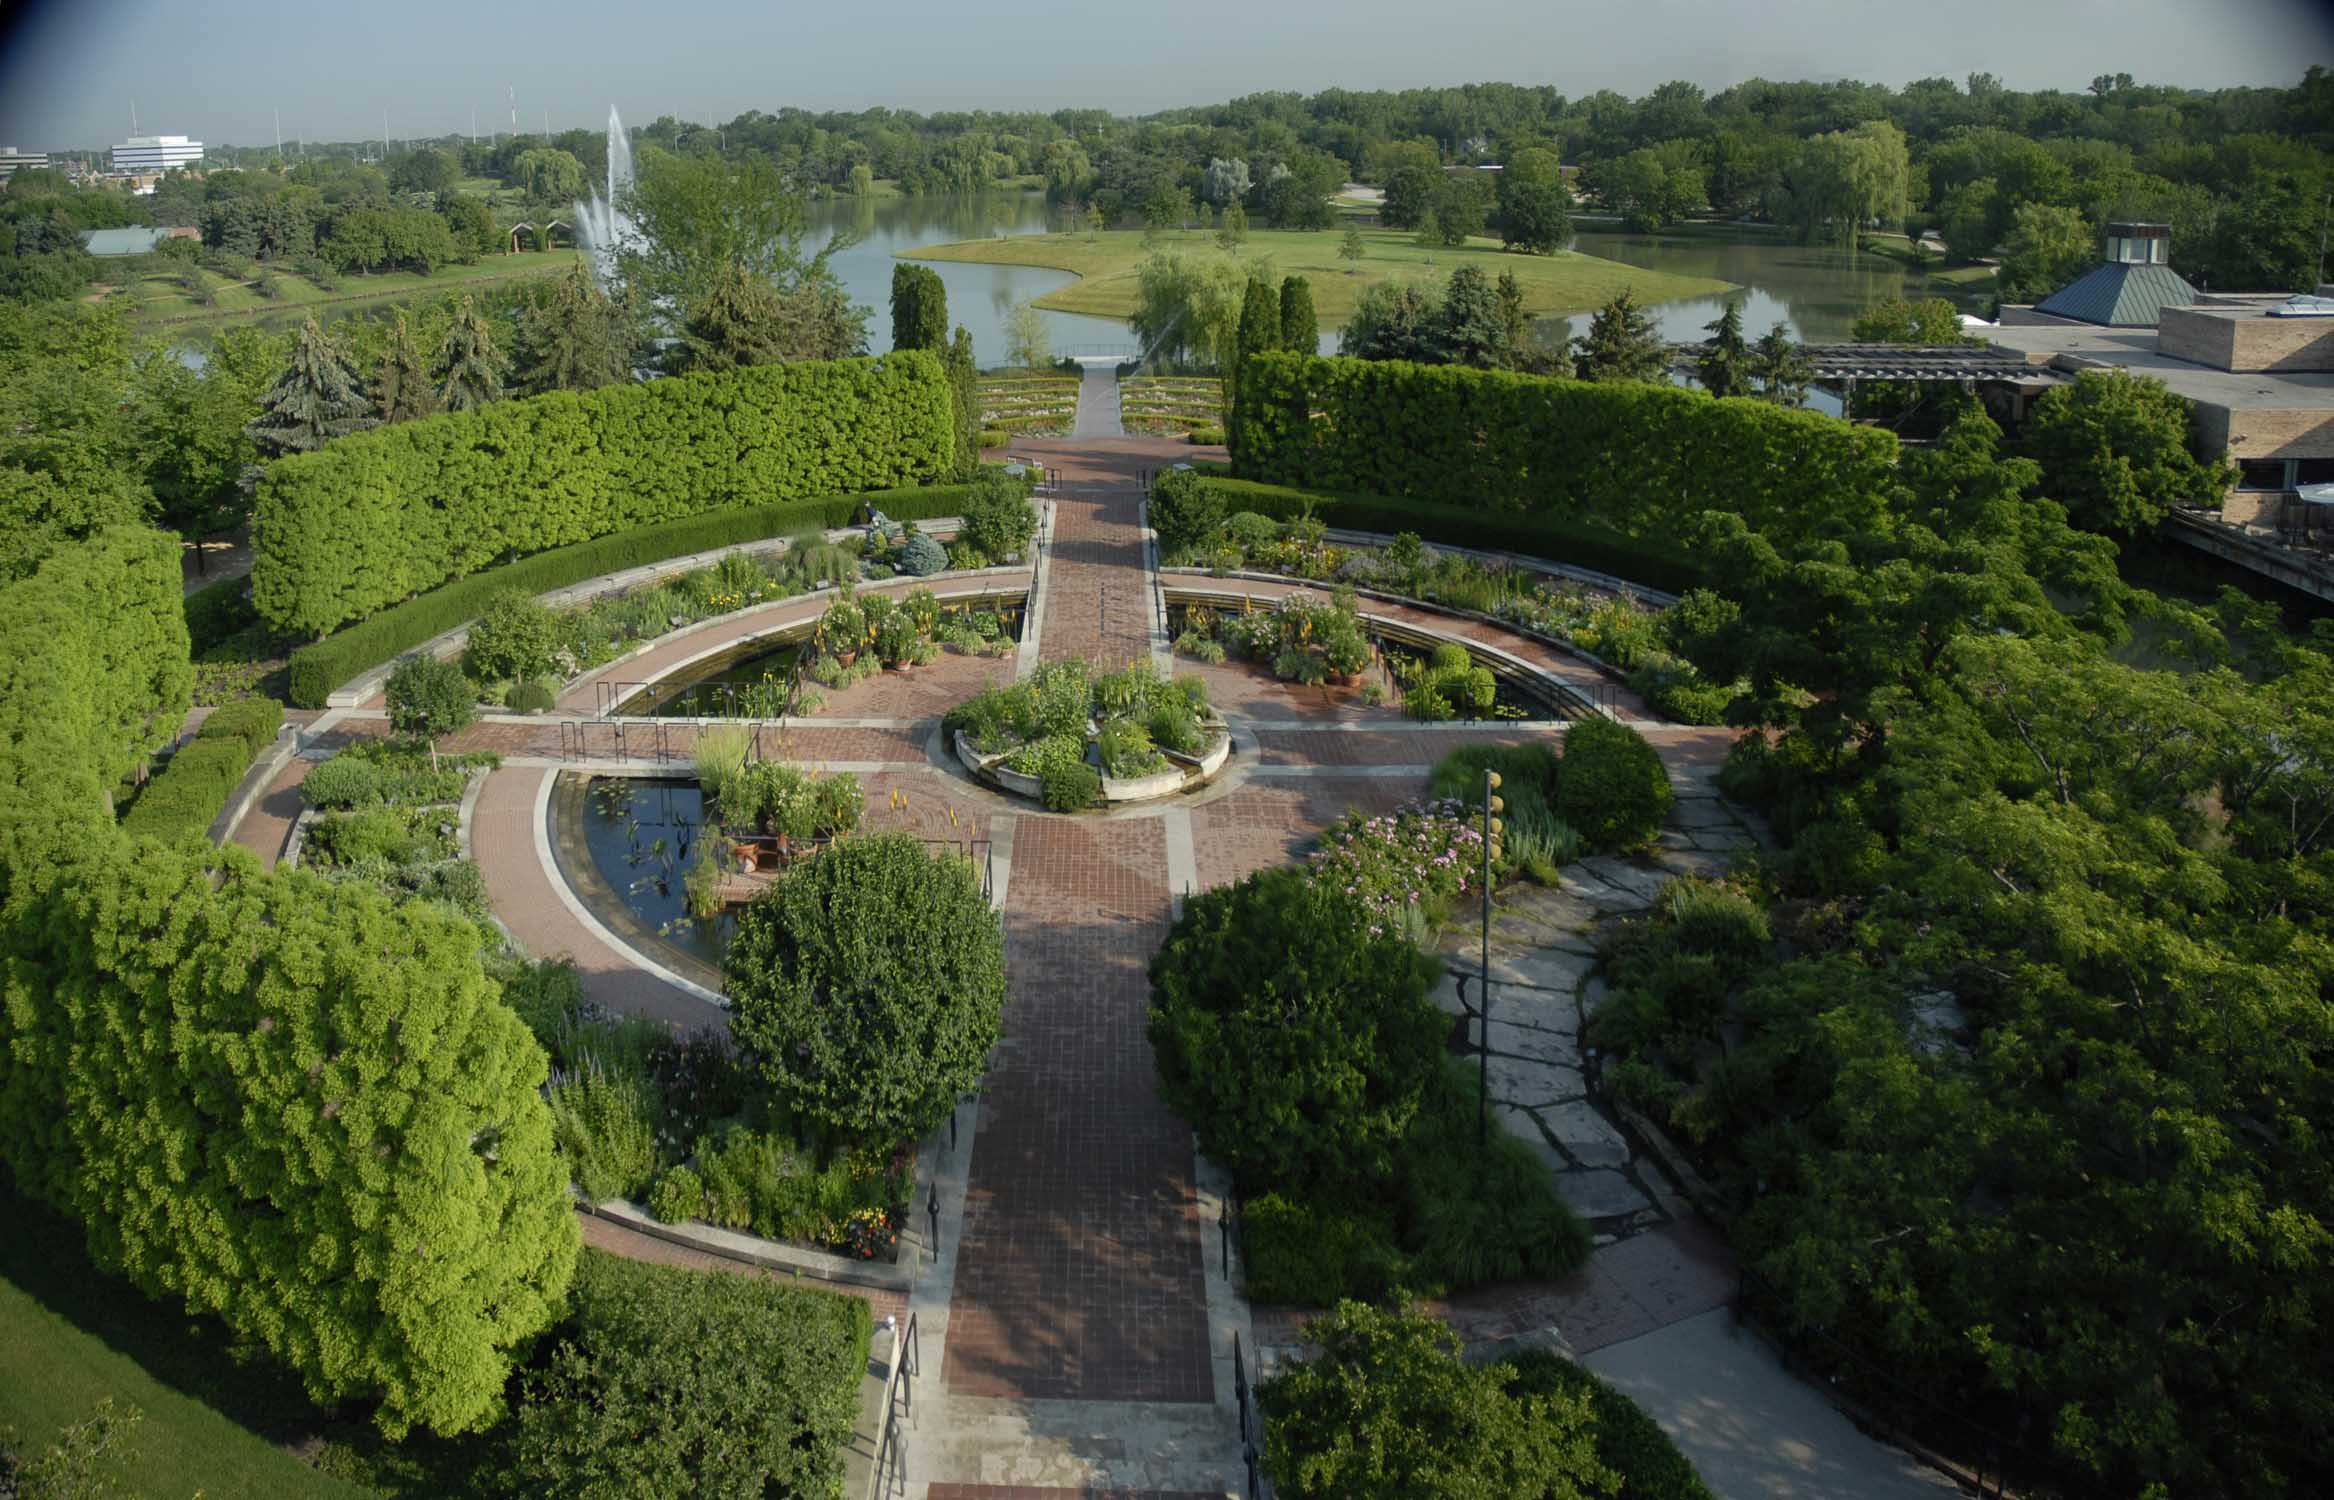 1000+ images about botanic garden on Pinterest.